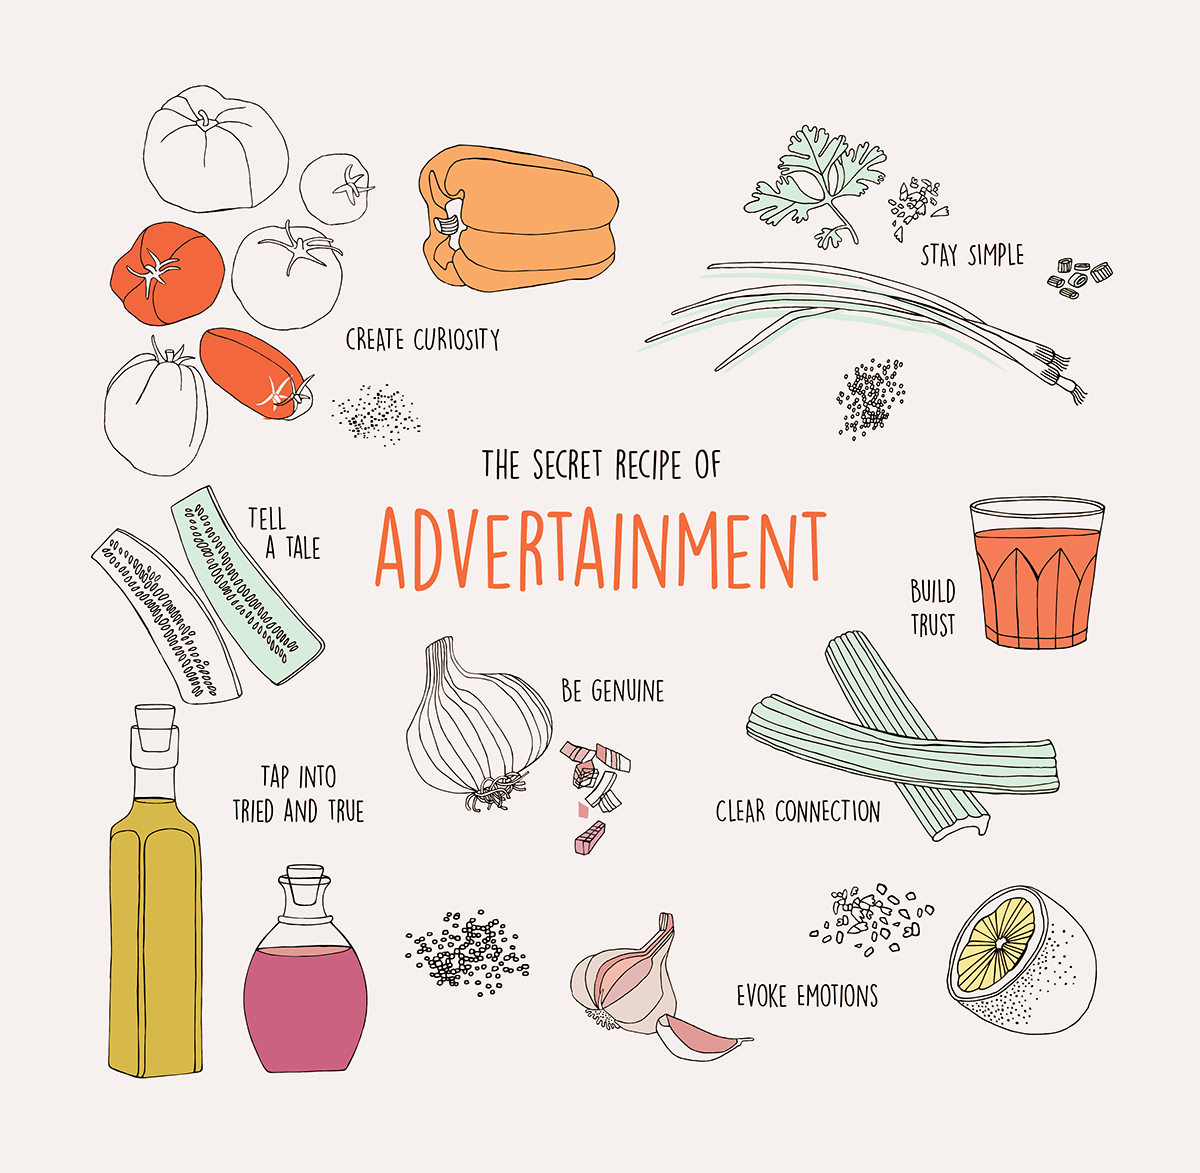 Getting ready for the holidays? Don't forget the recipe for #Advertainment! https://t.co/u8nIB7qNVN https://t.co/eIYDt2fJFx